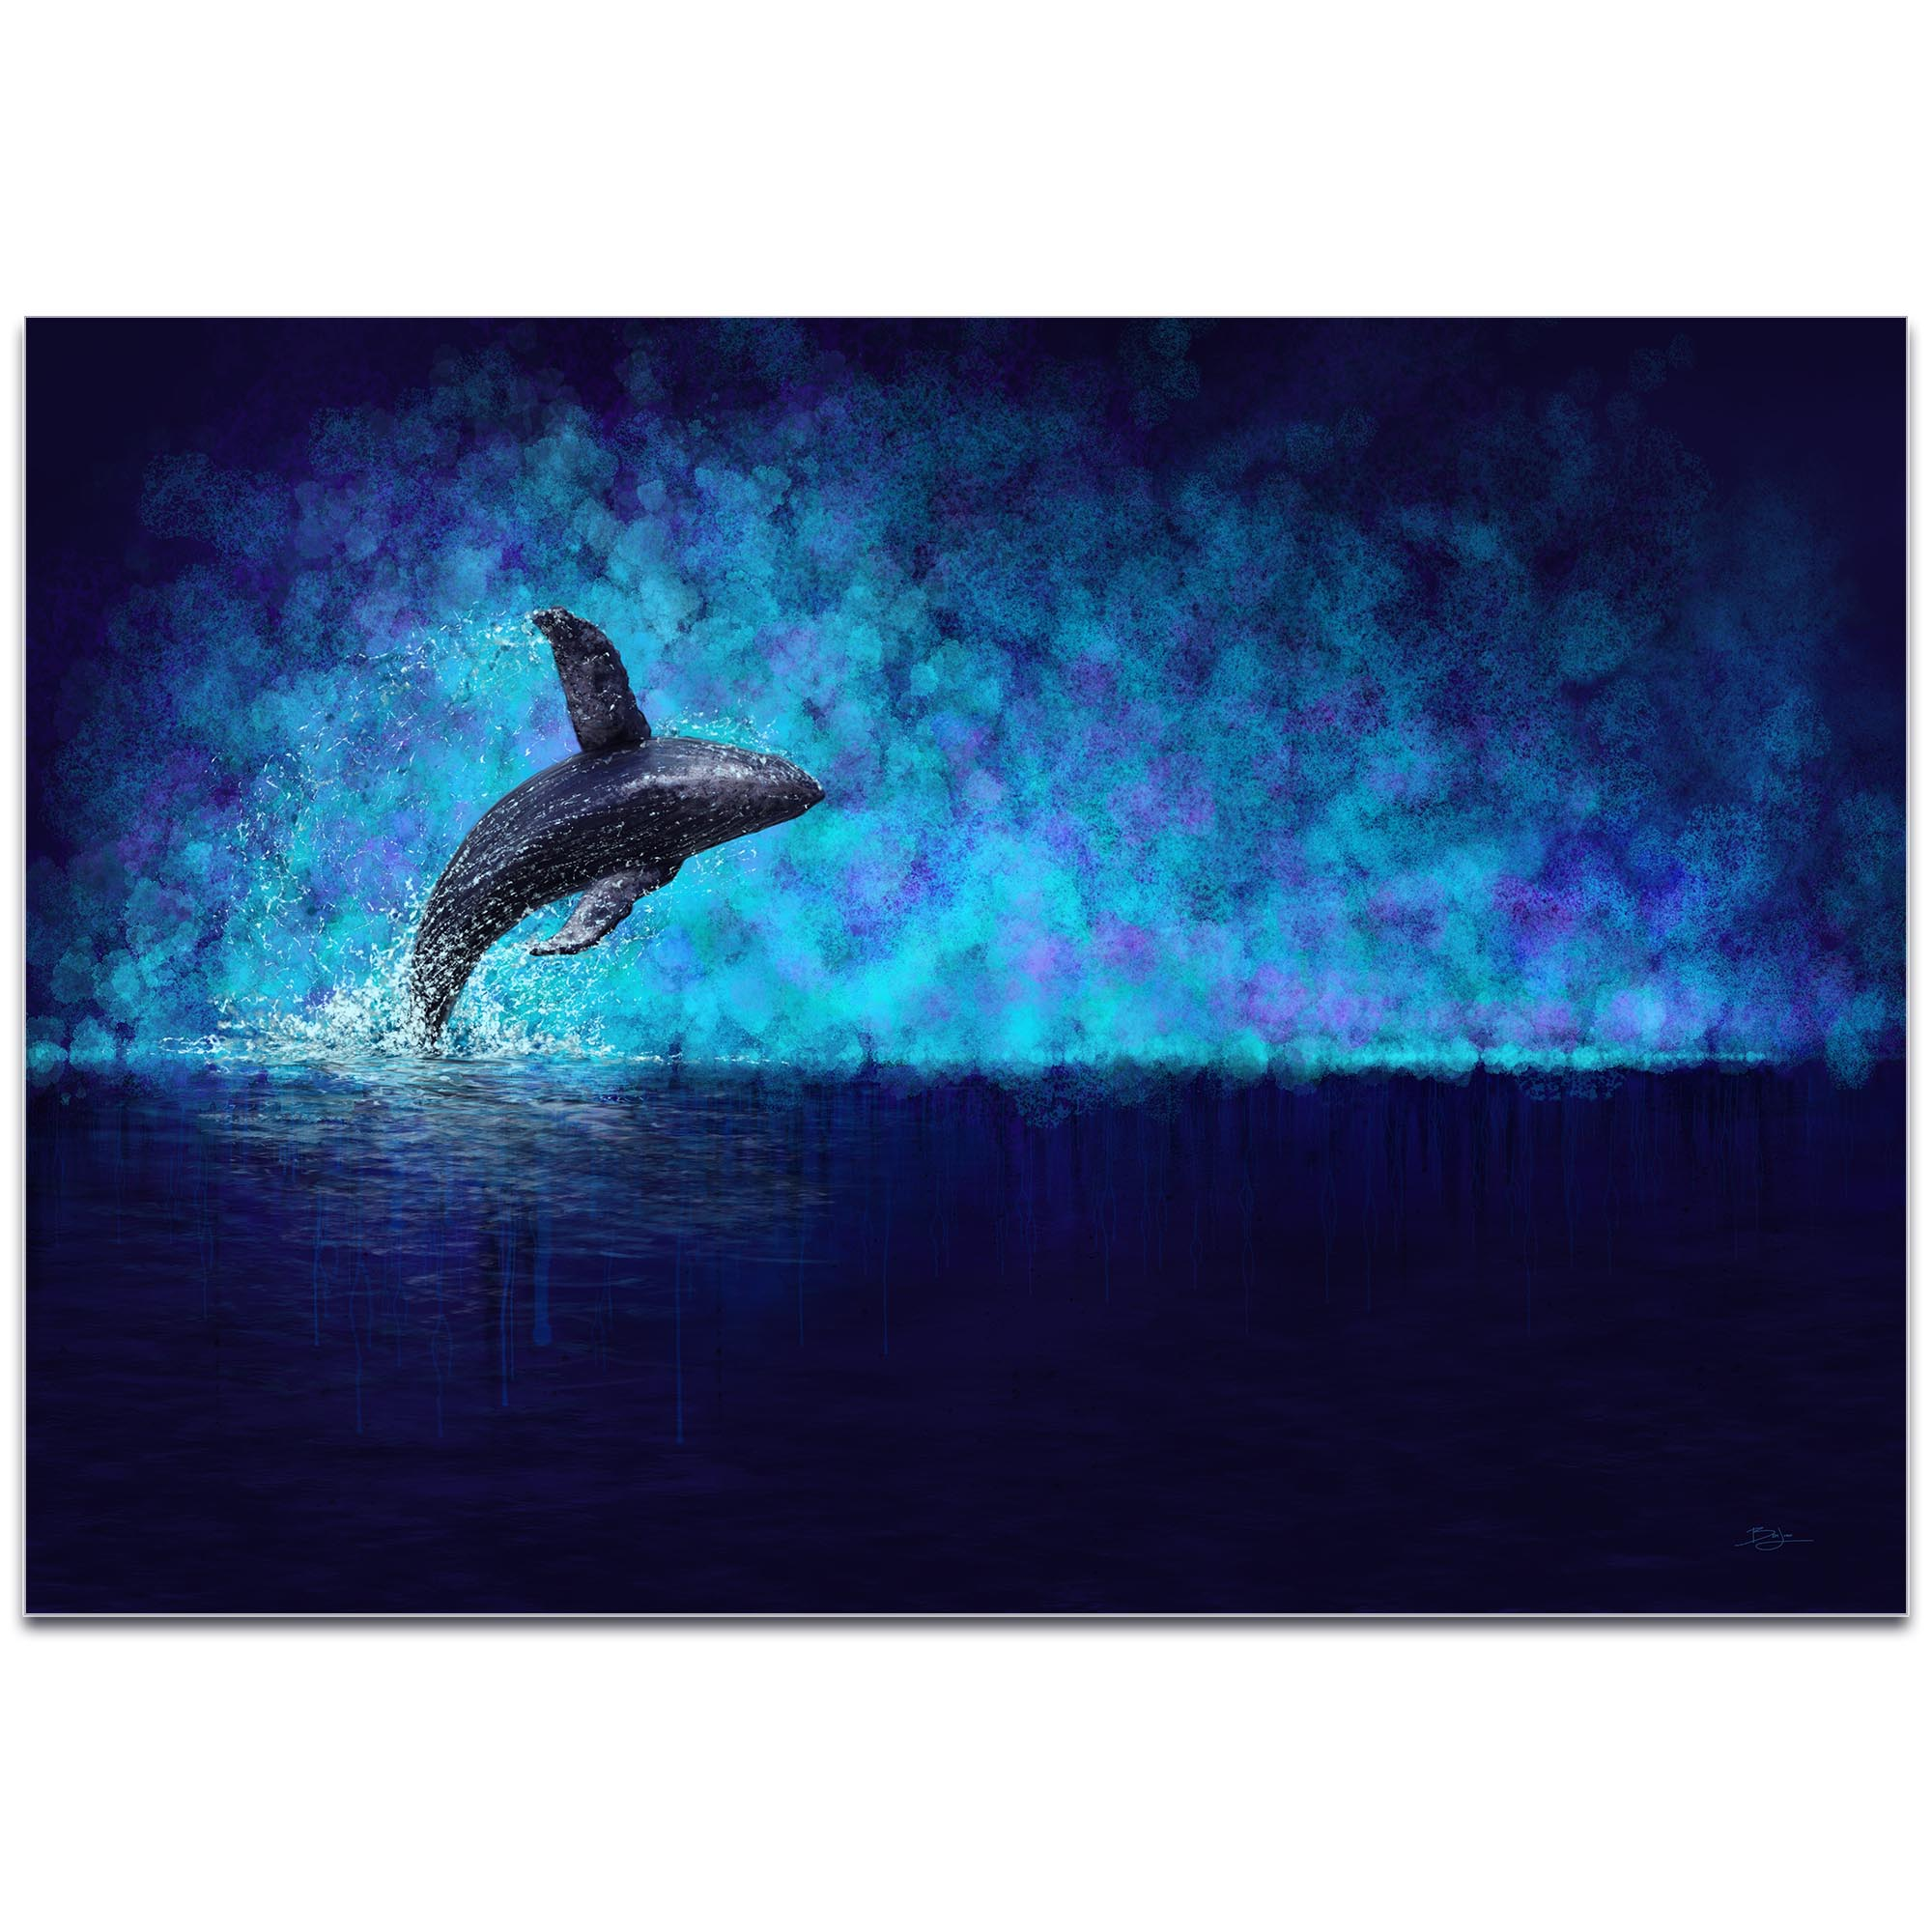 Whale Painting 'Breaching the Night' - Humpback Art on Metal or Acrylic - Image 2